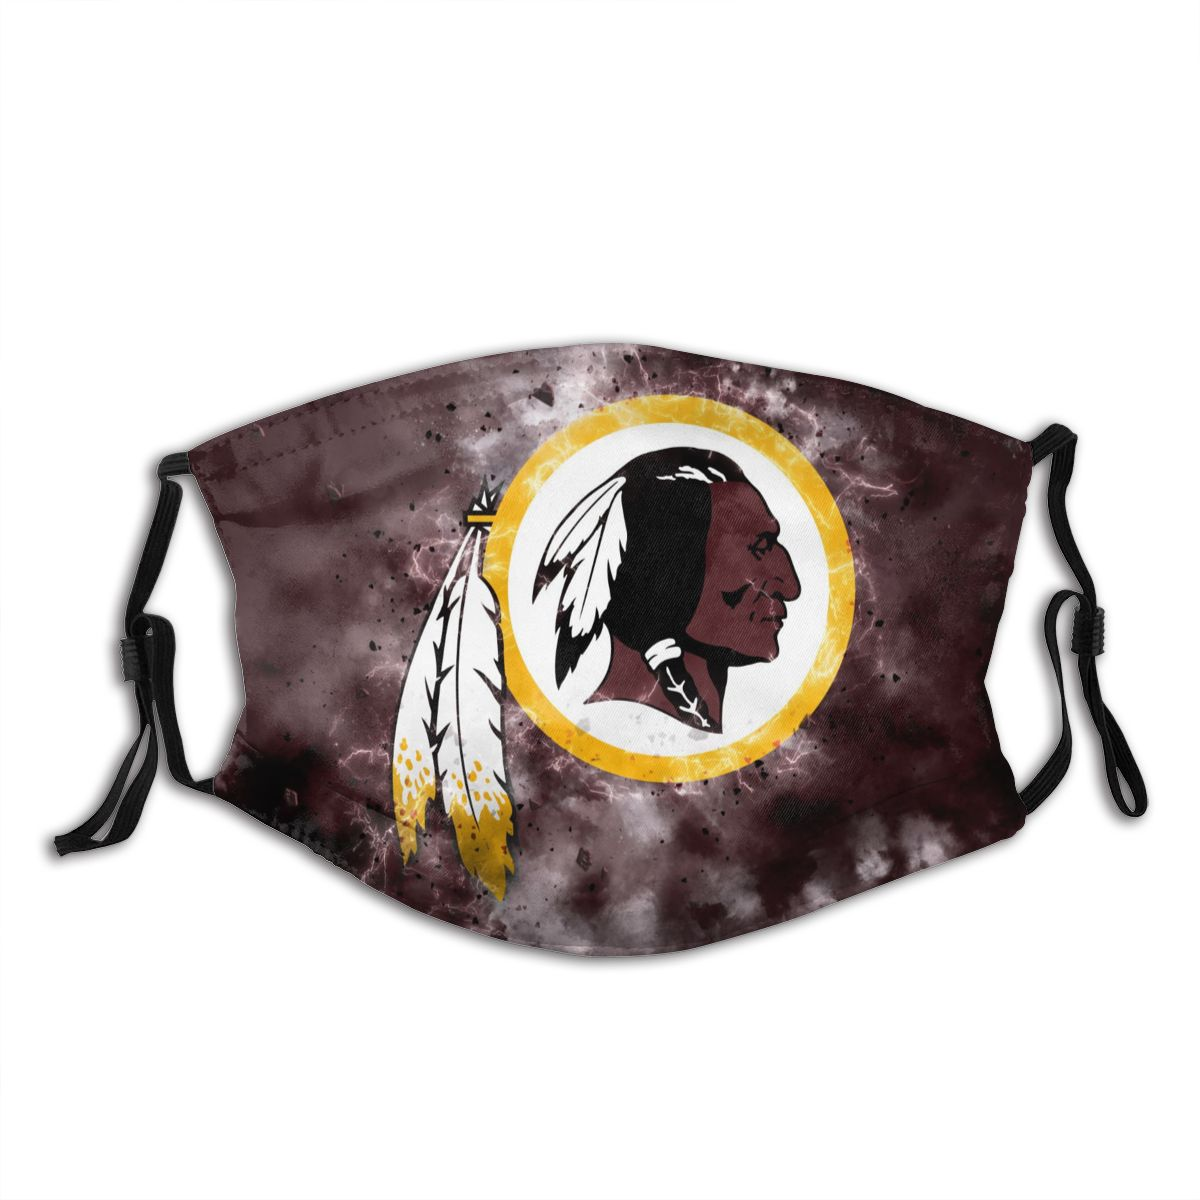 Redskins Illustration Art Adult Cloth Face Covering With Filter